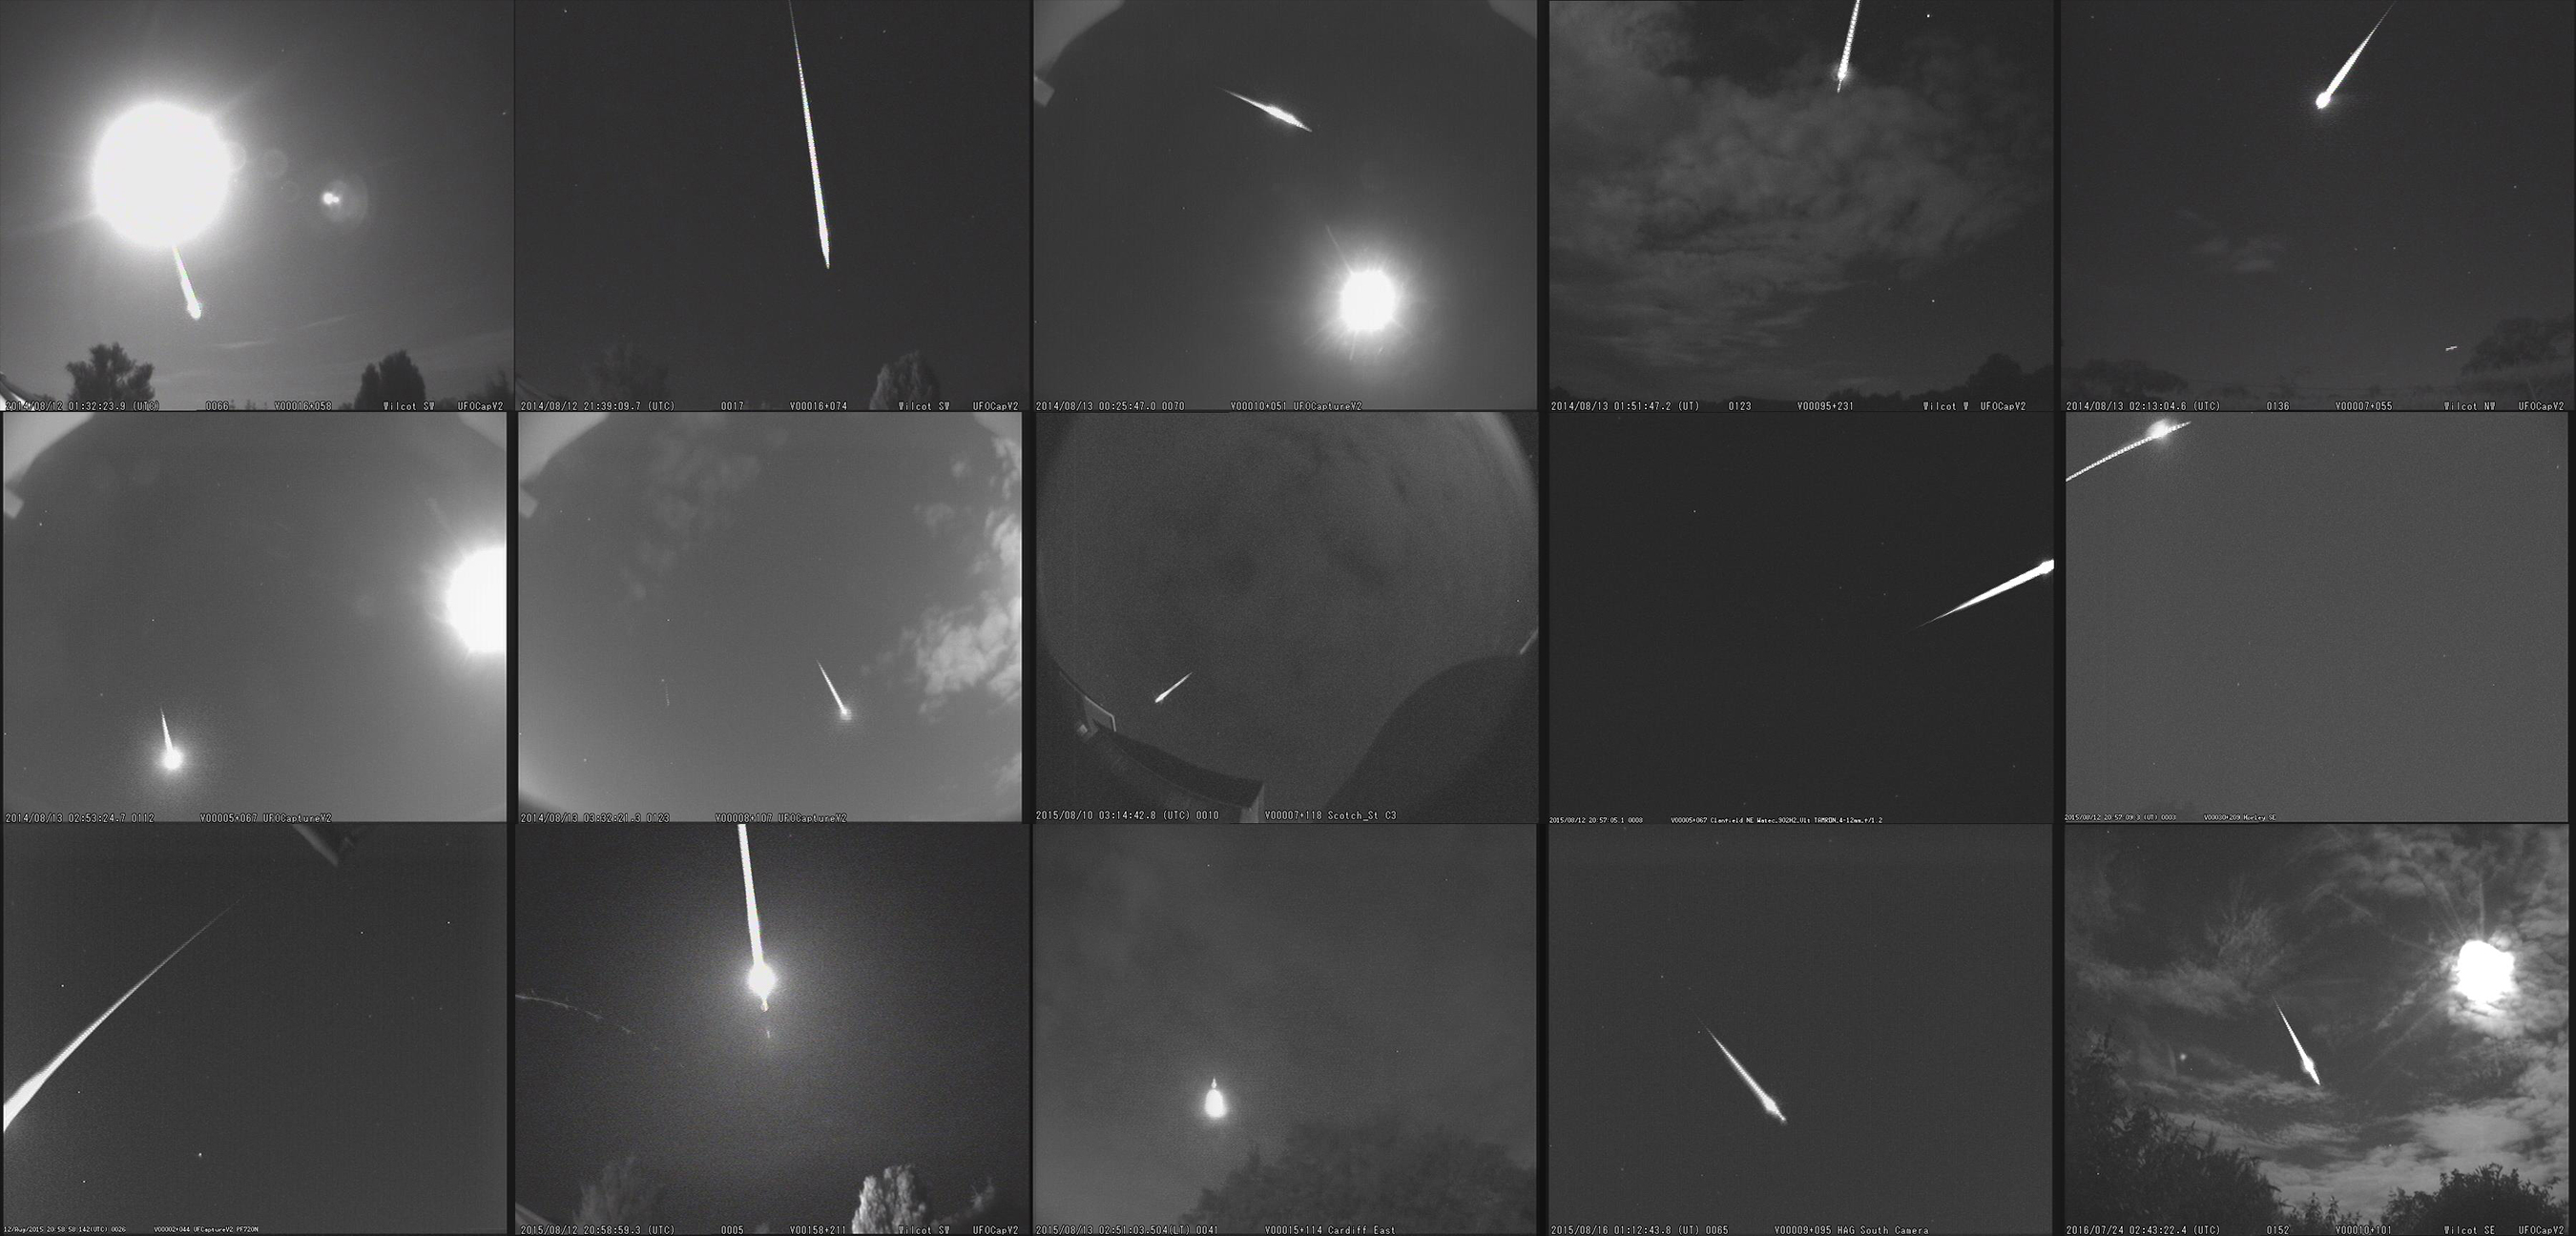 Perseid meteor shower live